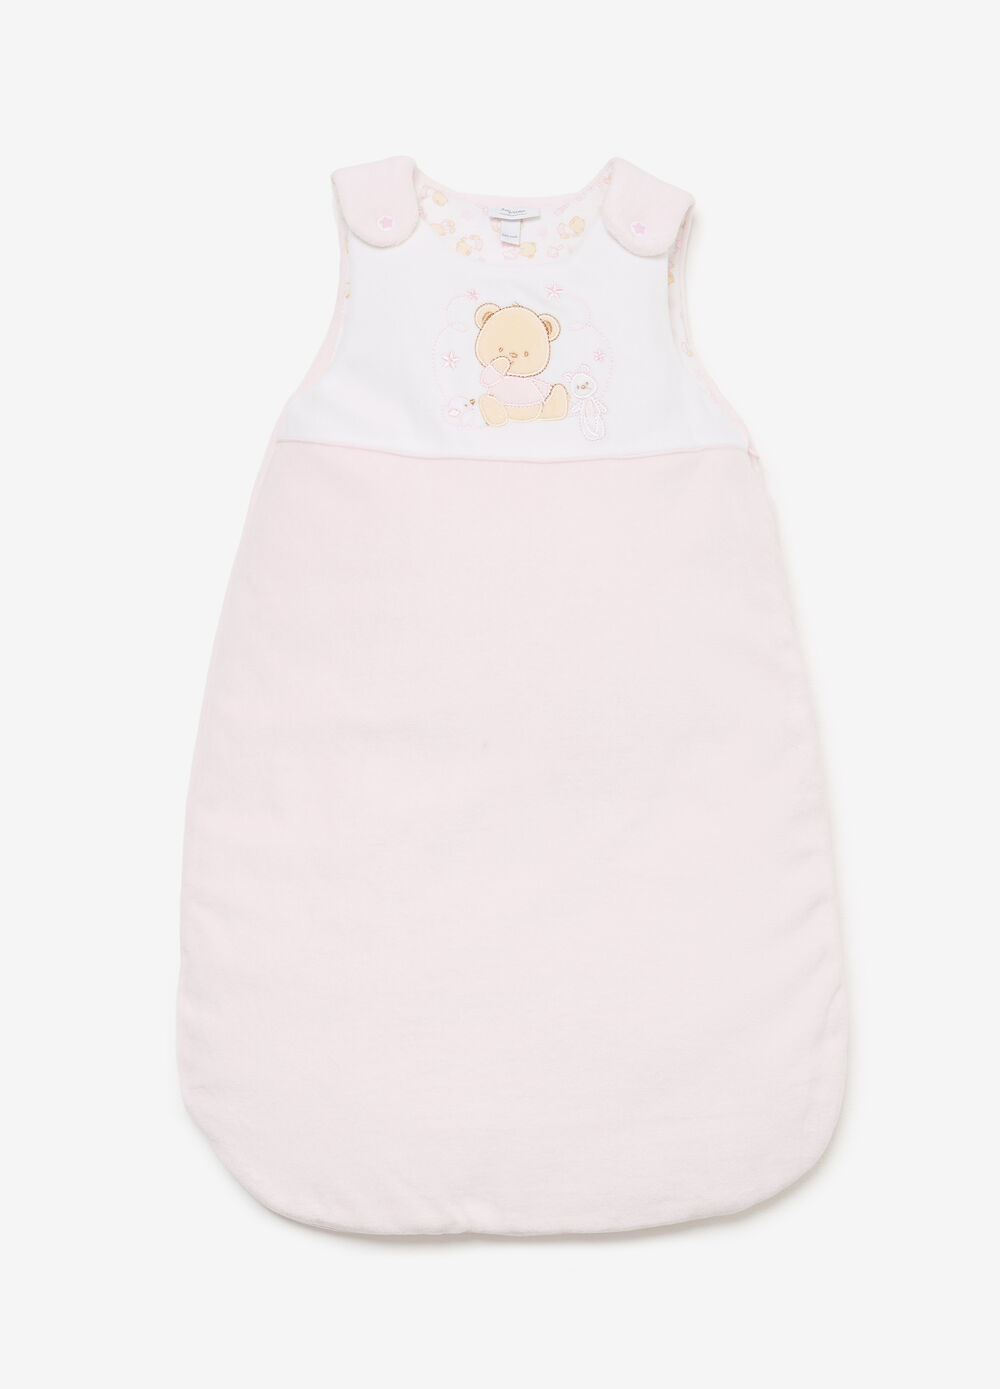 Cotton blend baby sleeping bag with patch